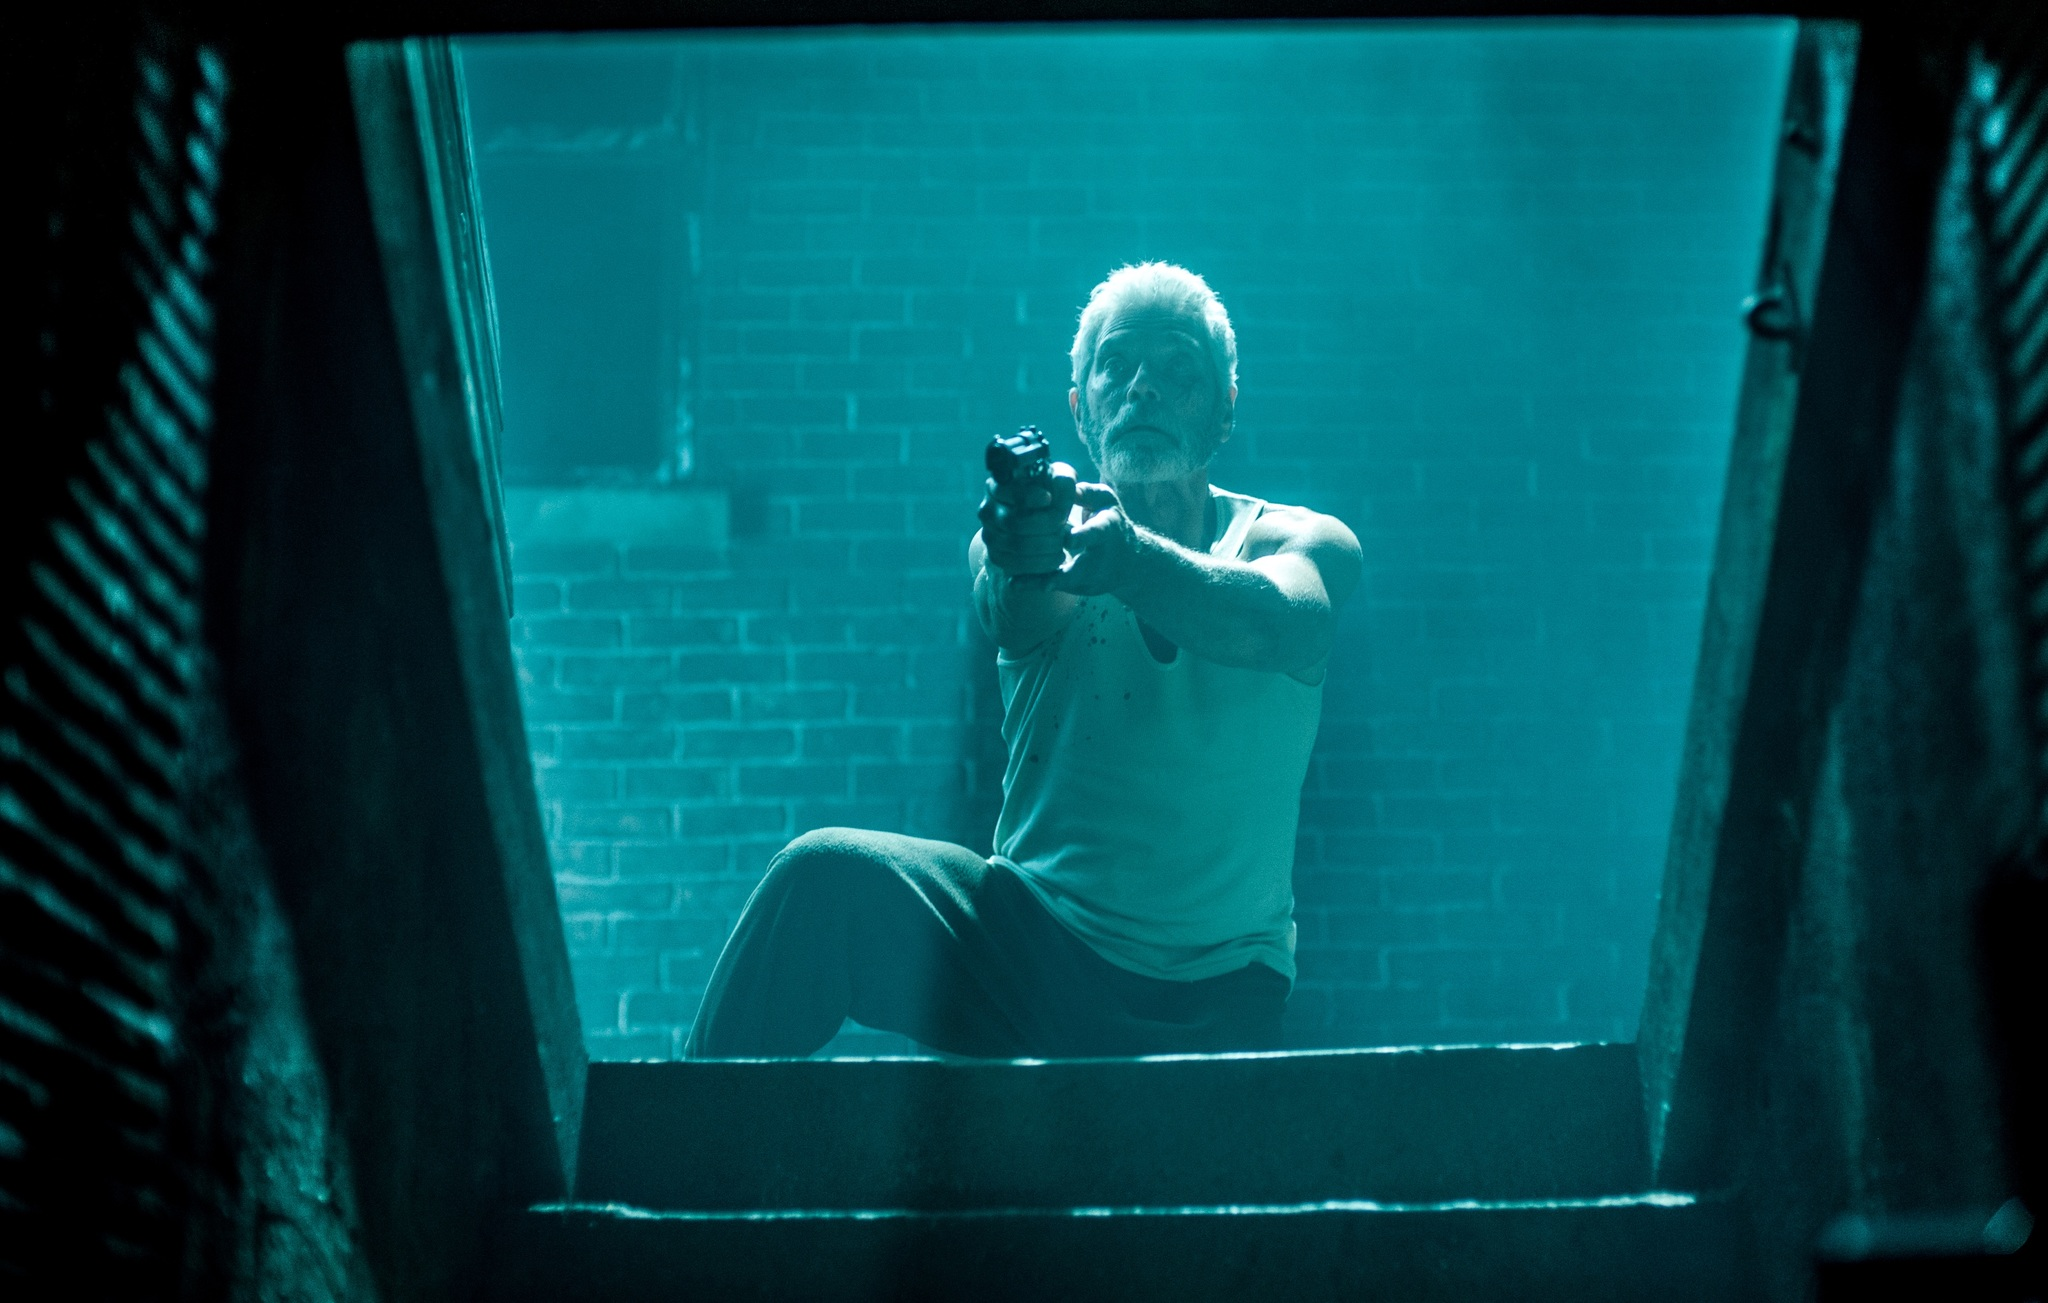 Stephen Lang in Don't Breathe (2016)